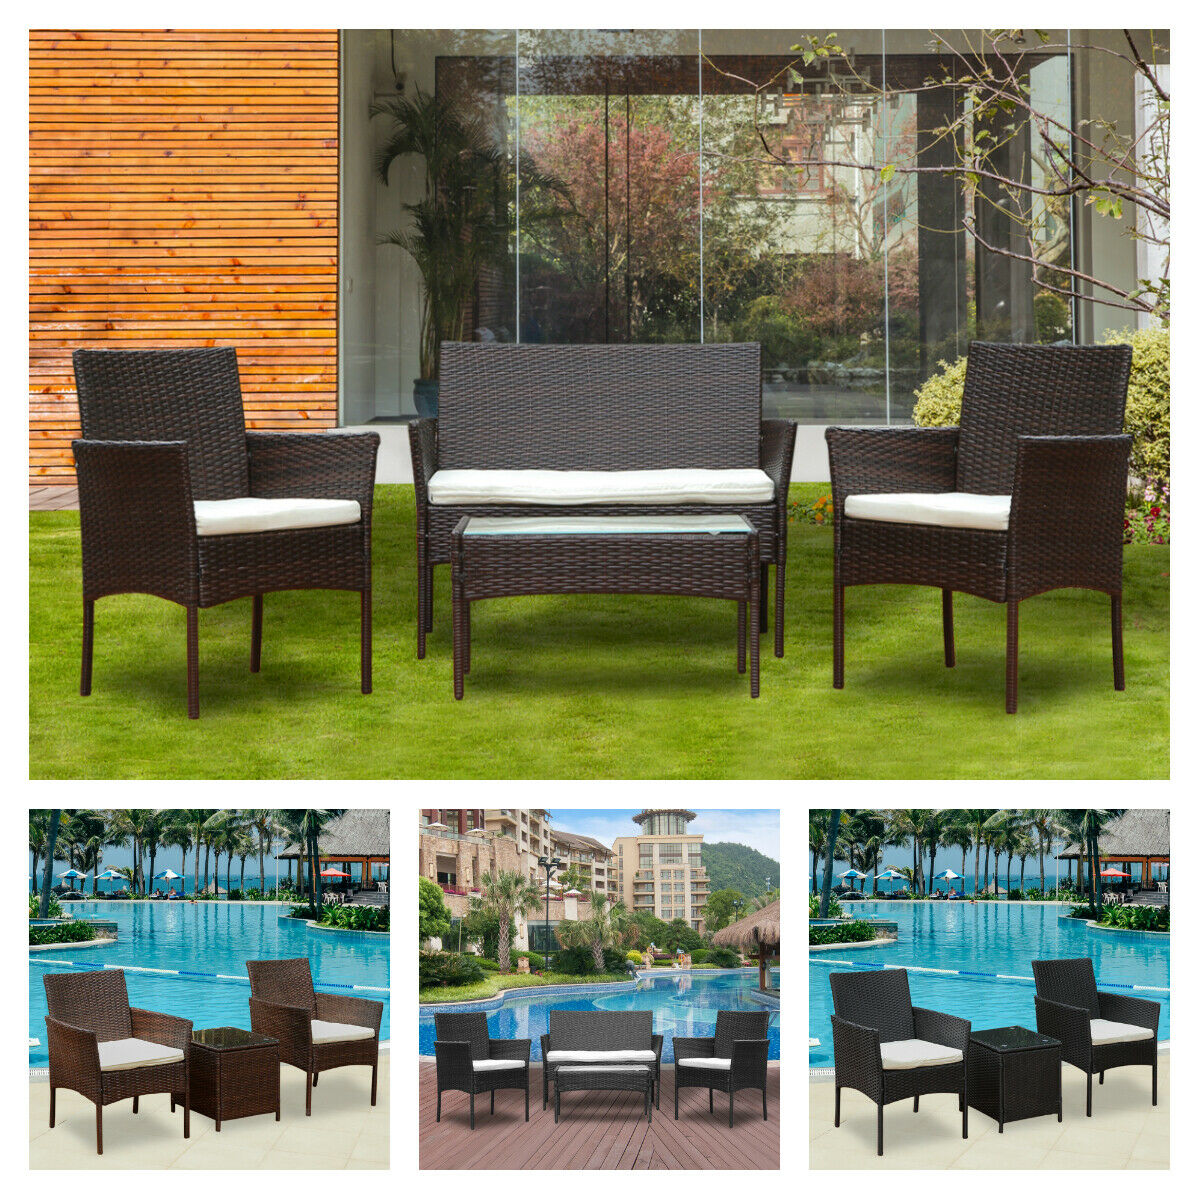 Garden Furniture - Rattan Garden Furniture Set Table Chair Sofa Table Outdoor Patio Set Yard New UK